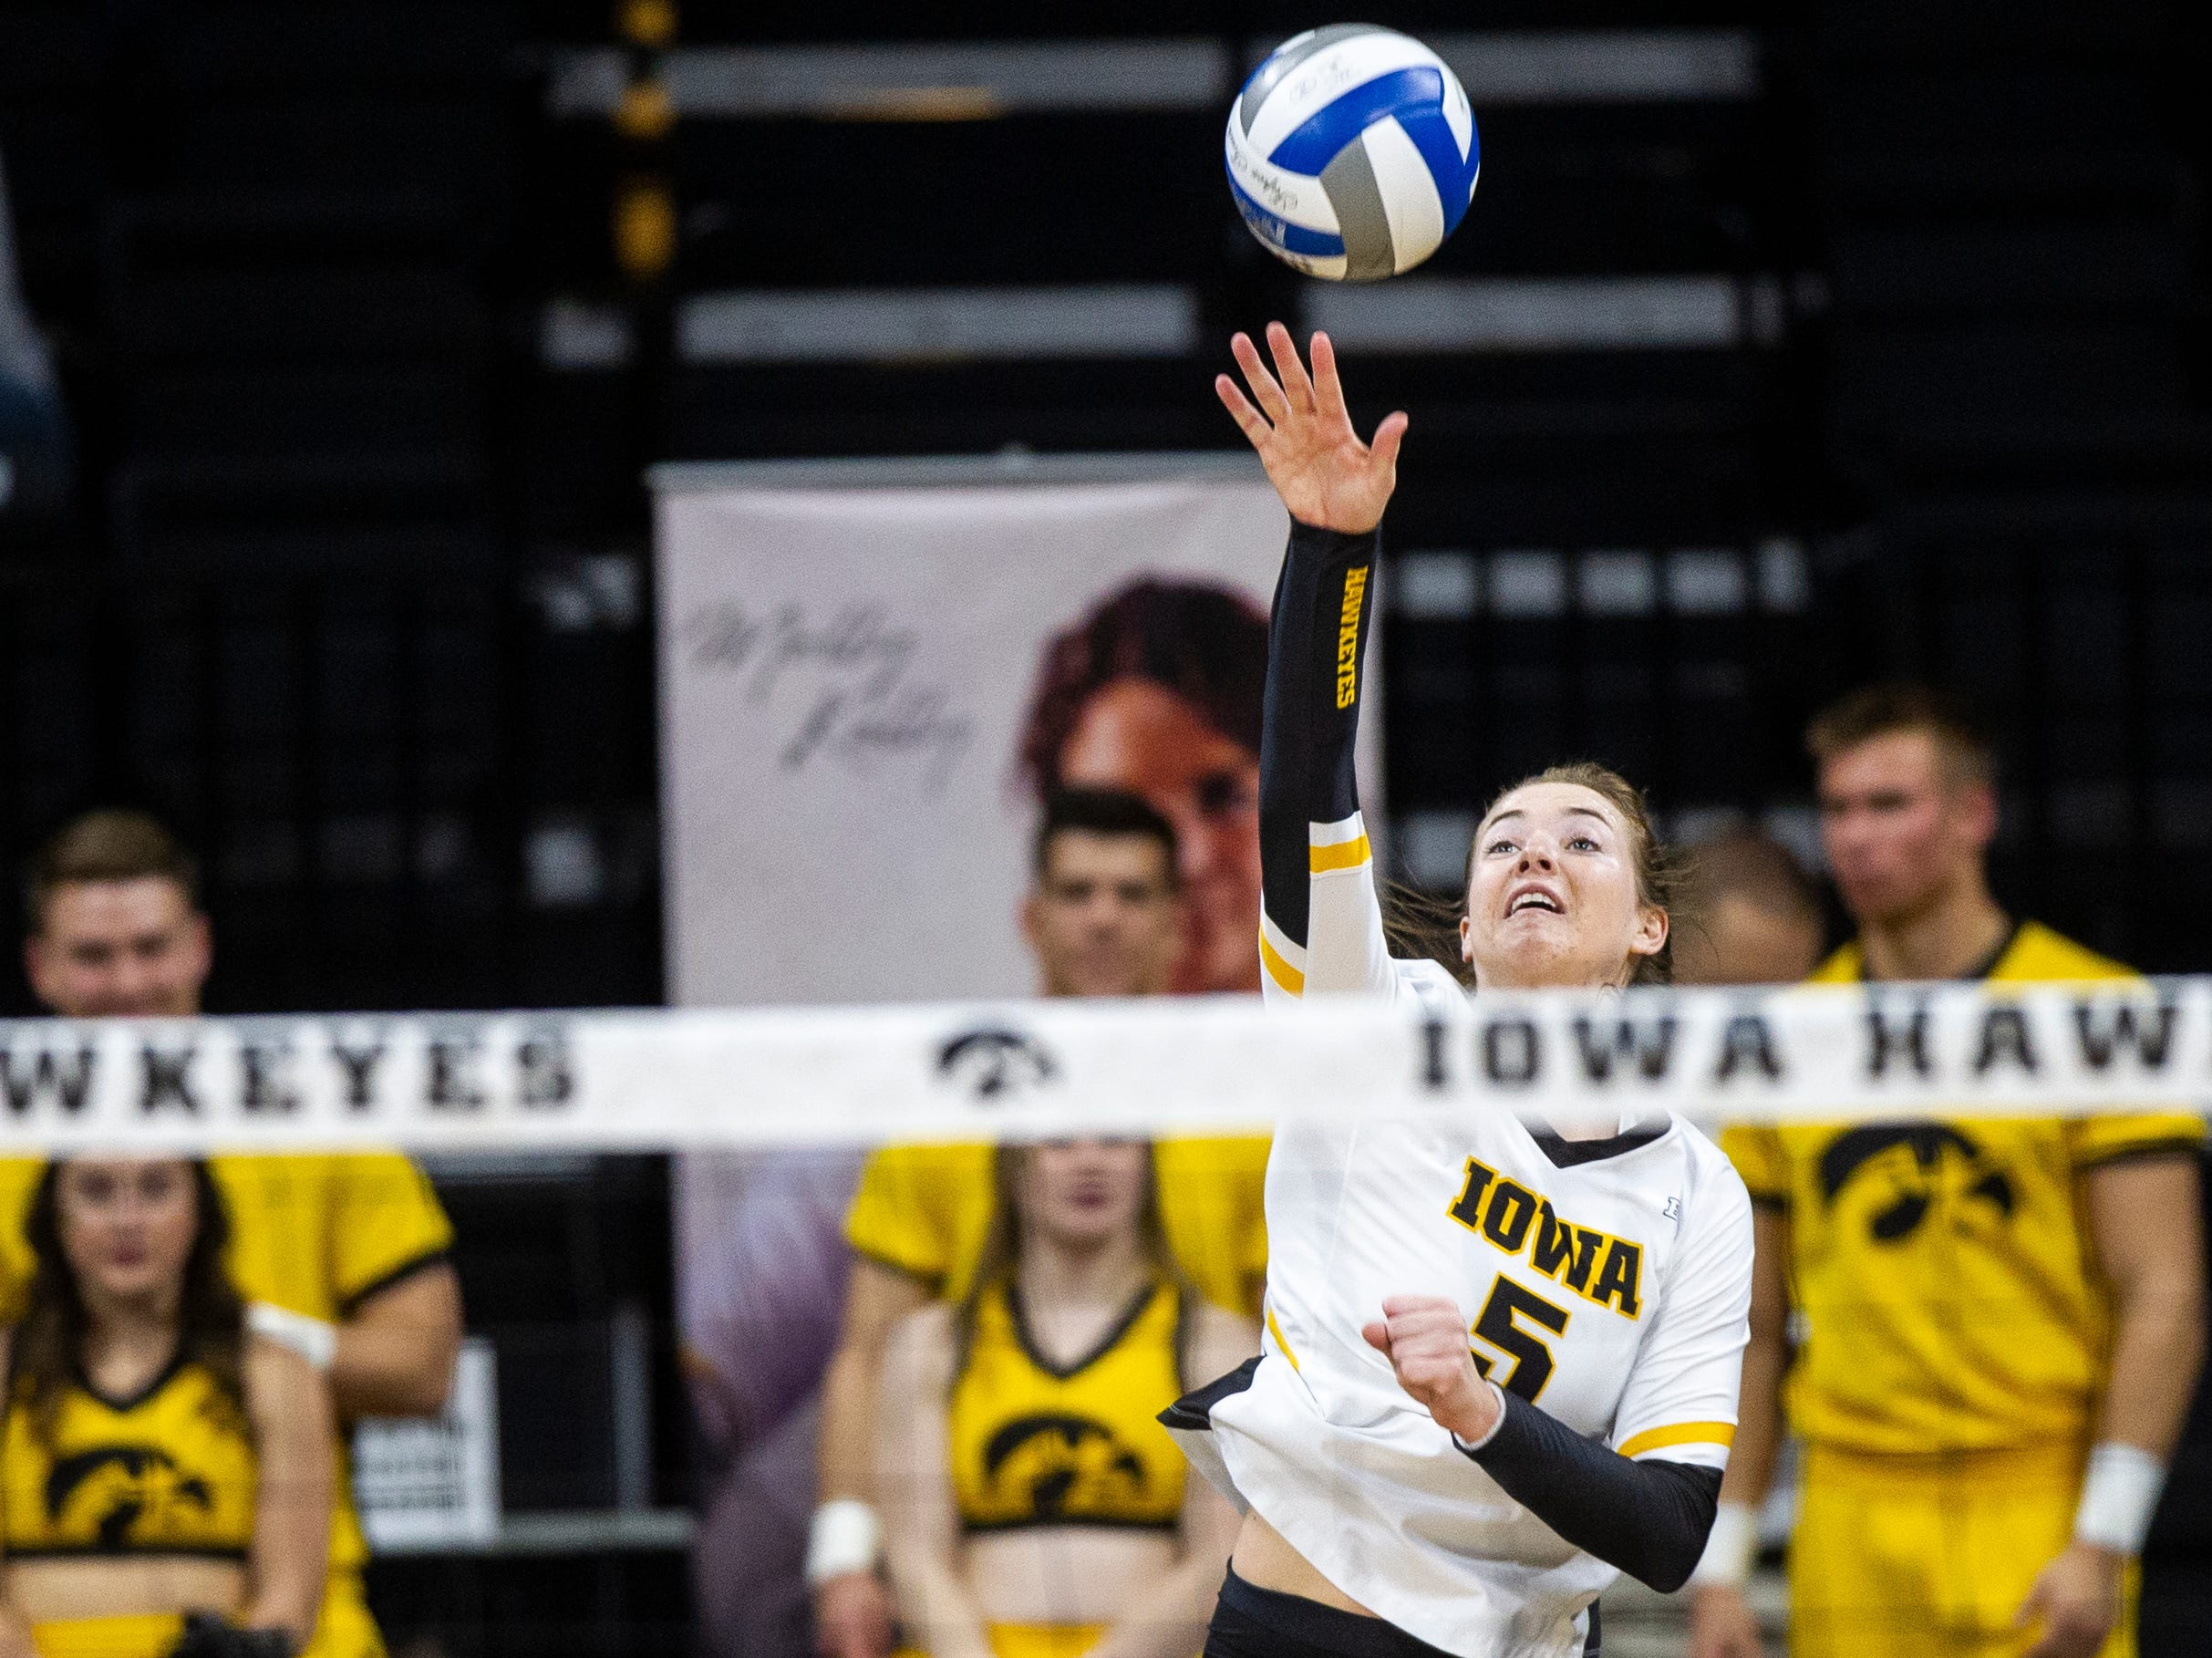 Iowa outside hitter Meghan Buzzerio (5) serves during an NCAA volleyball game on Wednesday, Nov. 7, 2018, at Carver-Hawkeye Arena in Iowa City.